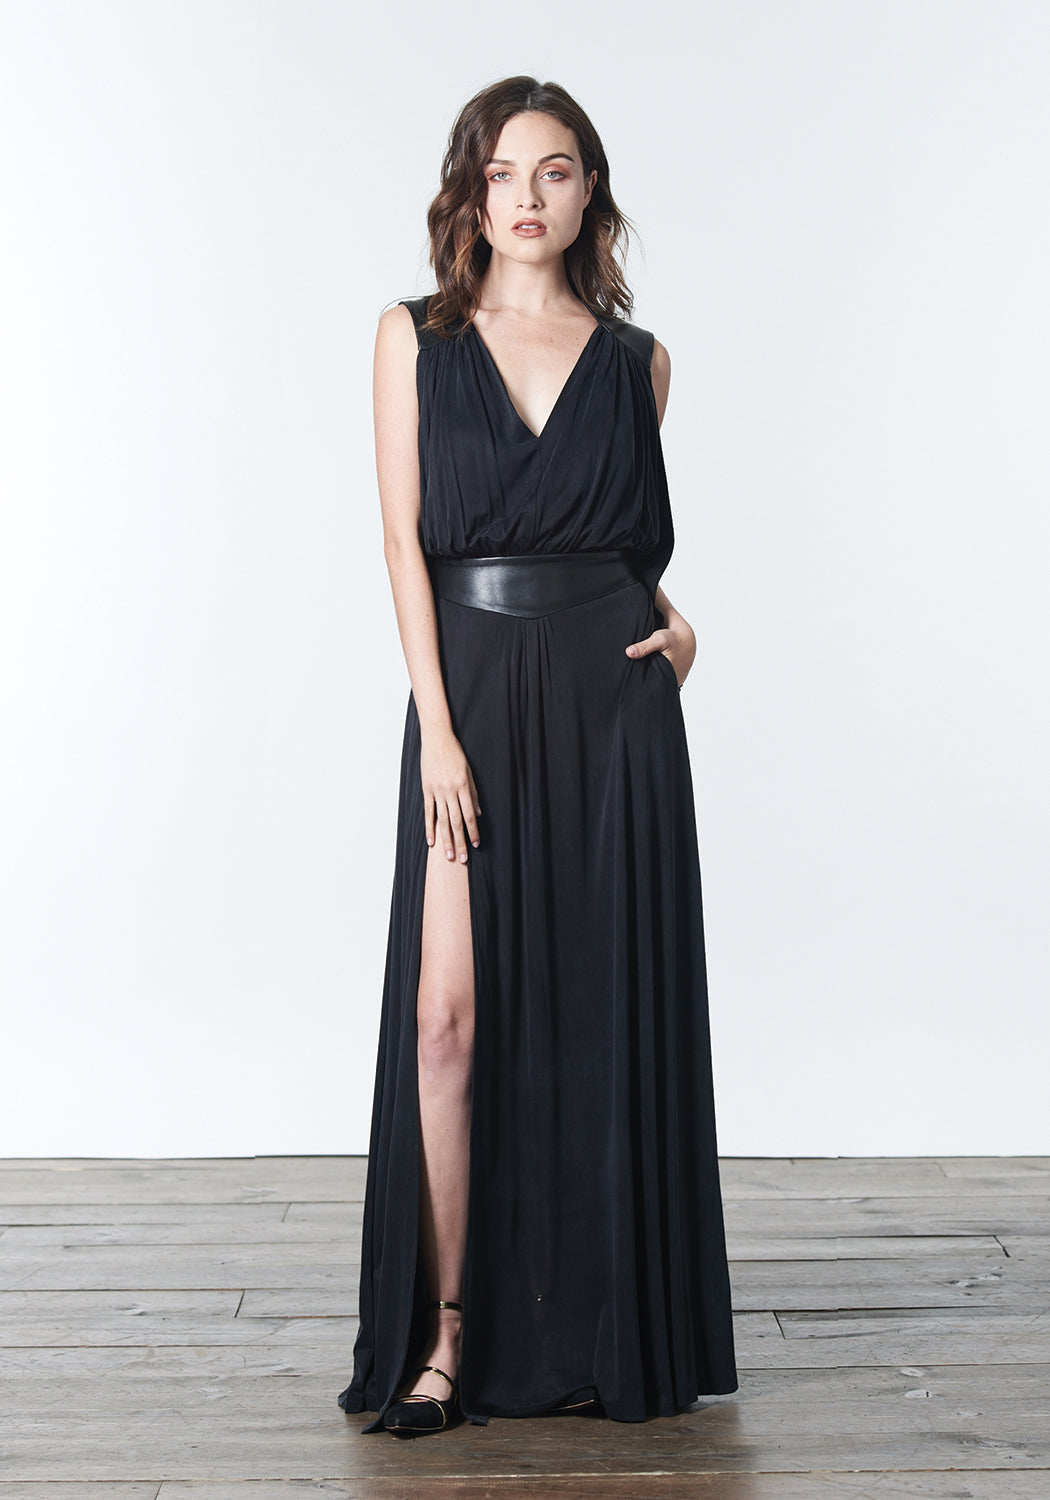 Long, winter maxi dress in soft black color that can be dressed up and worn as a gown to black tie or other evening event or dressed down for daytime looks.